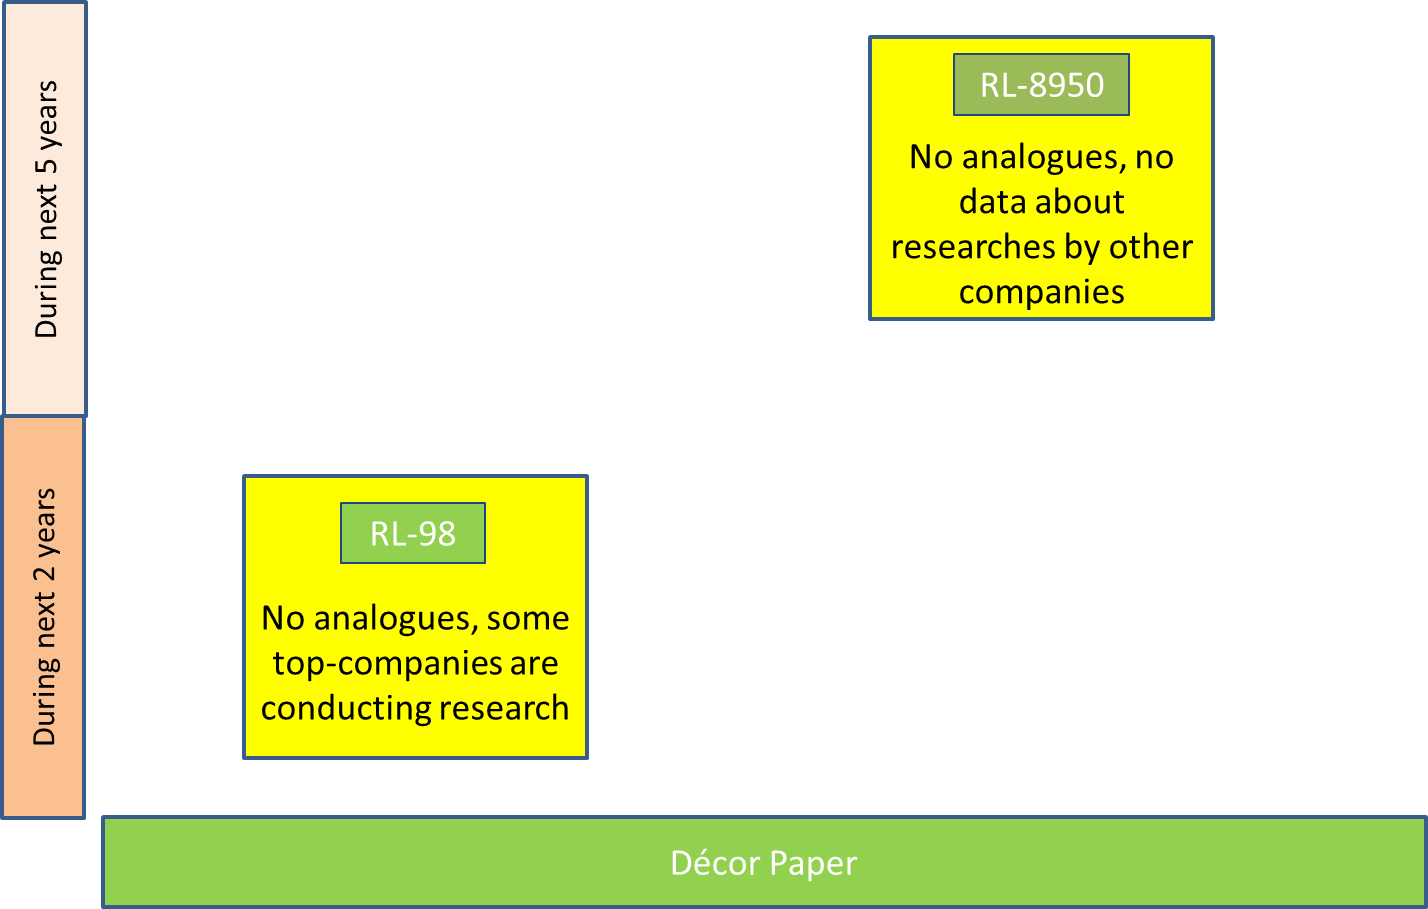 Decor Paper Grades Technologies and Know-How for RL-8950 and RL-98